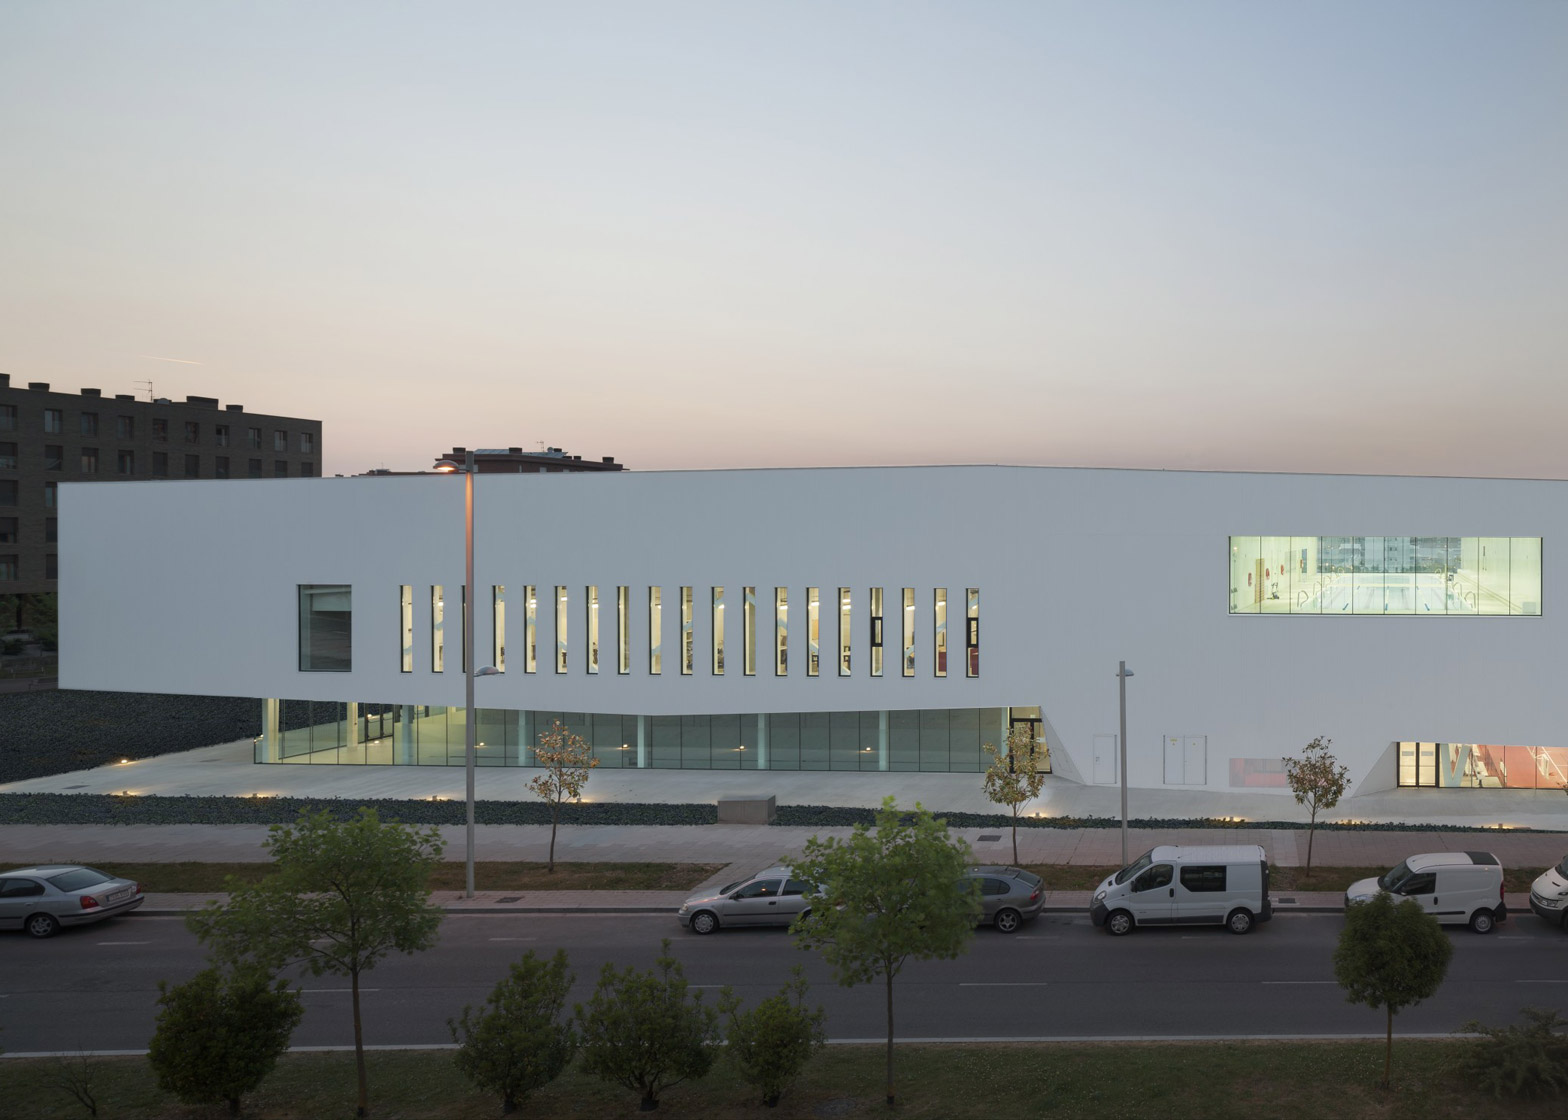 Salburúa Civic Center by ACXT